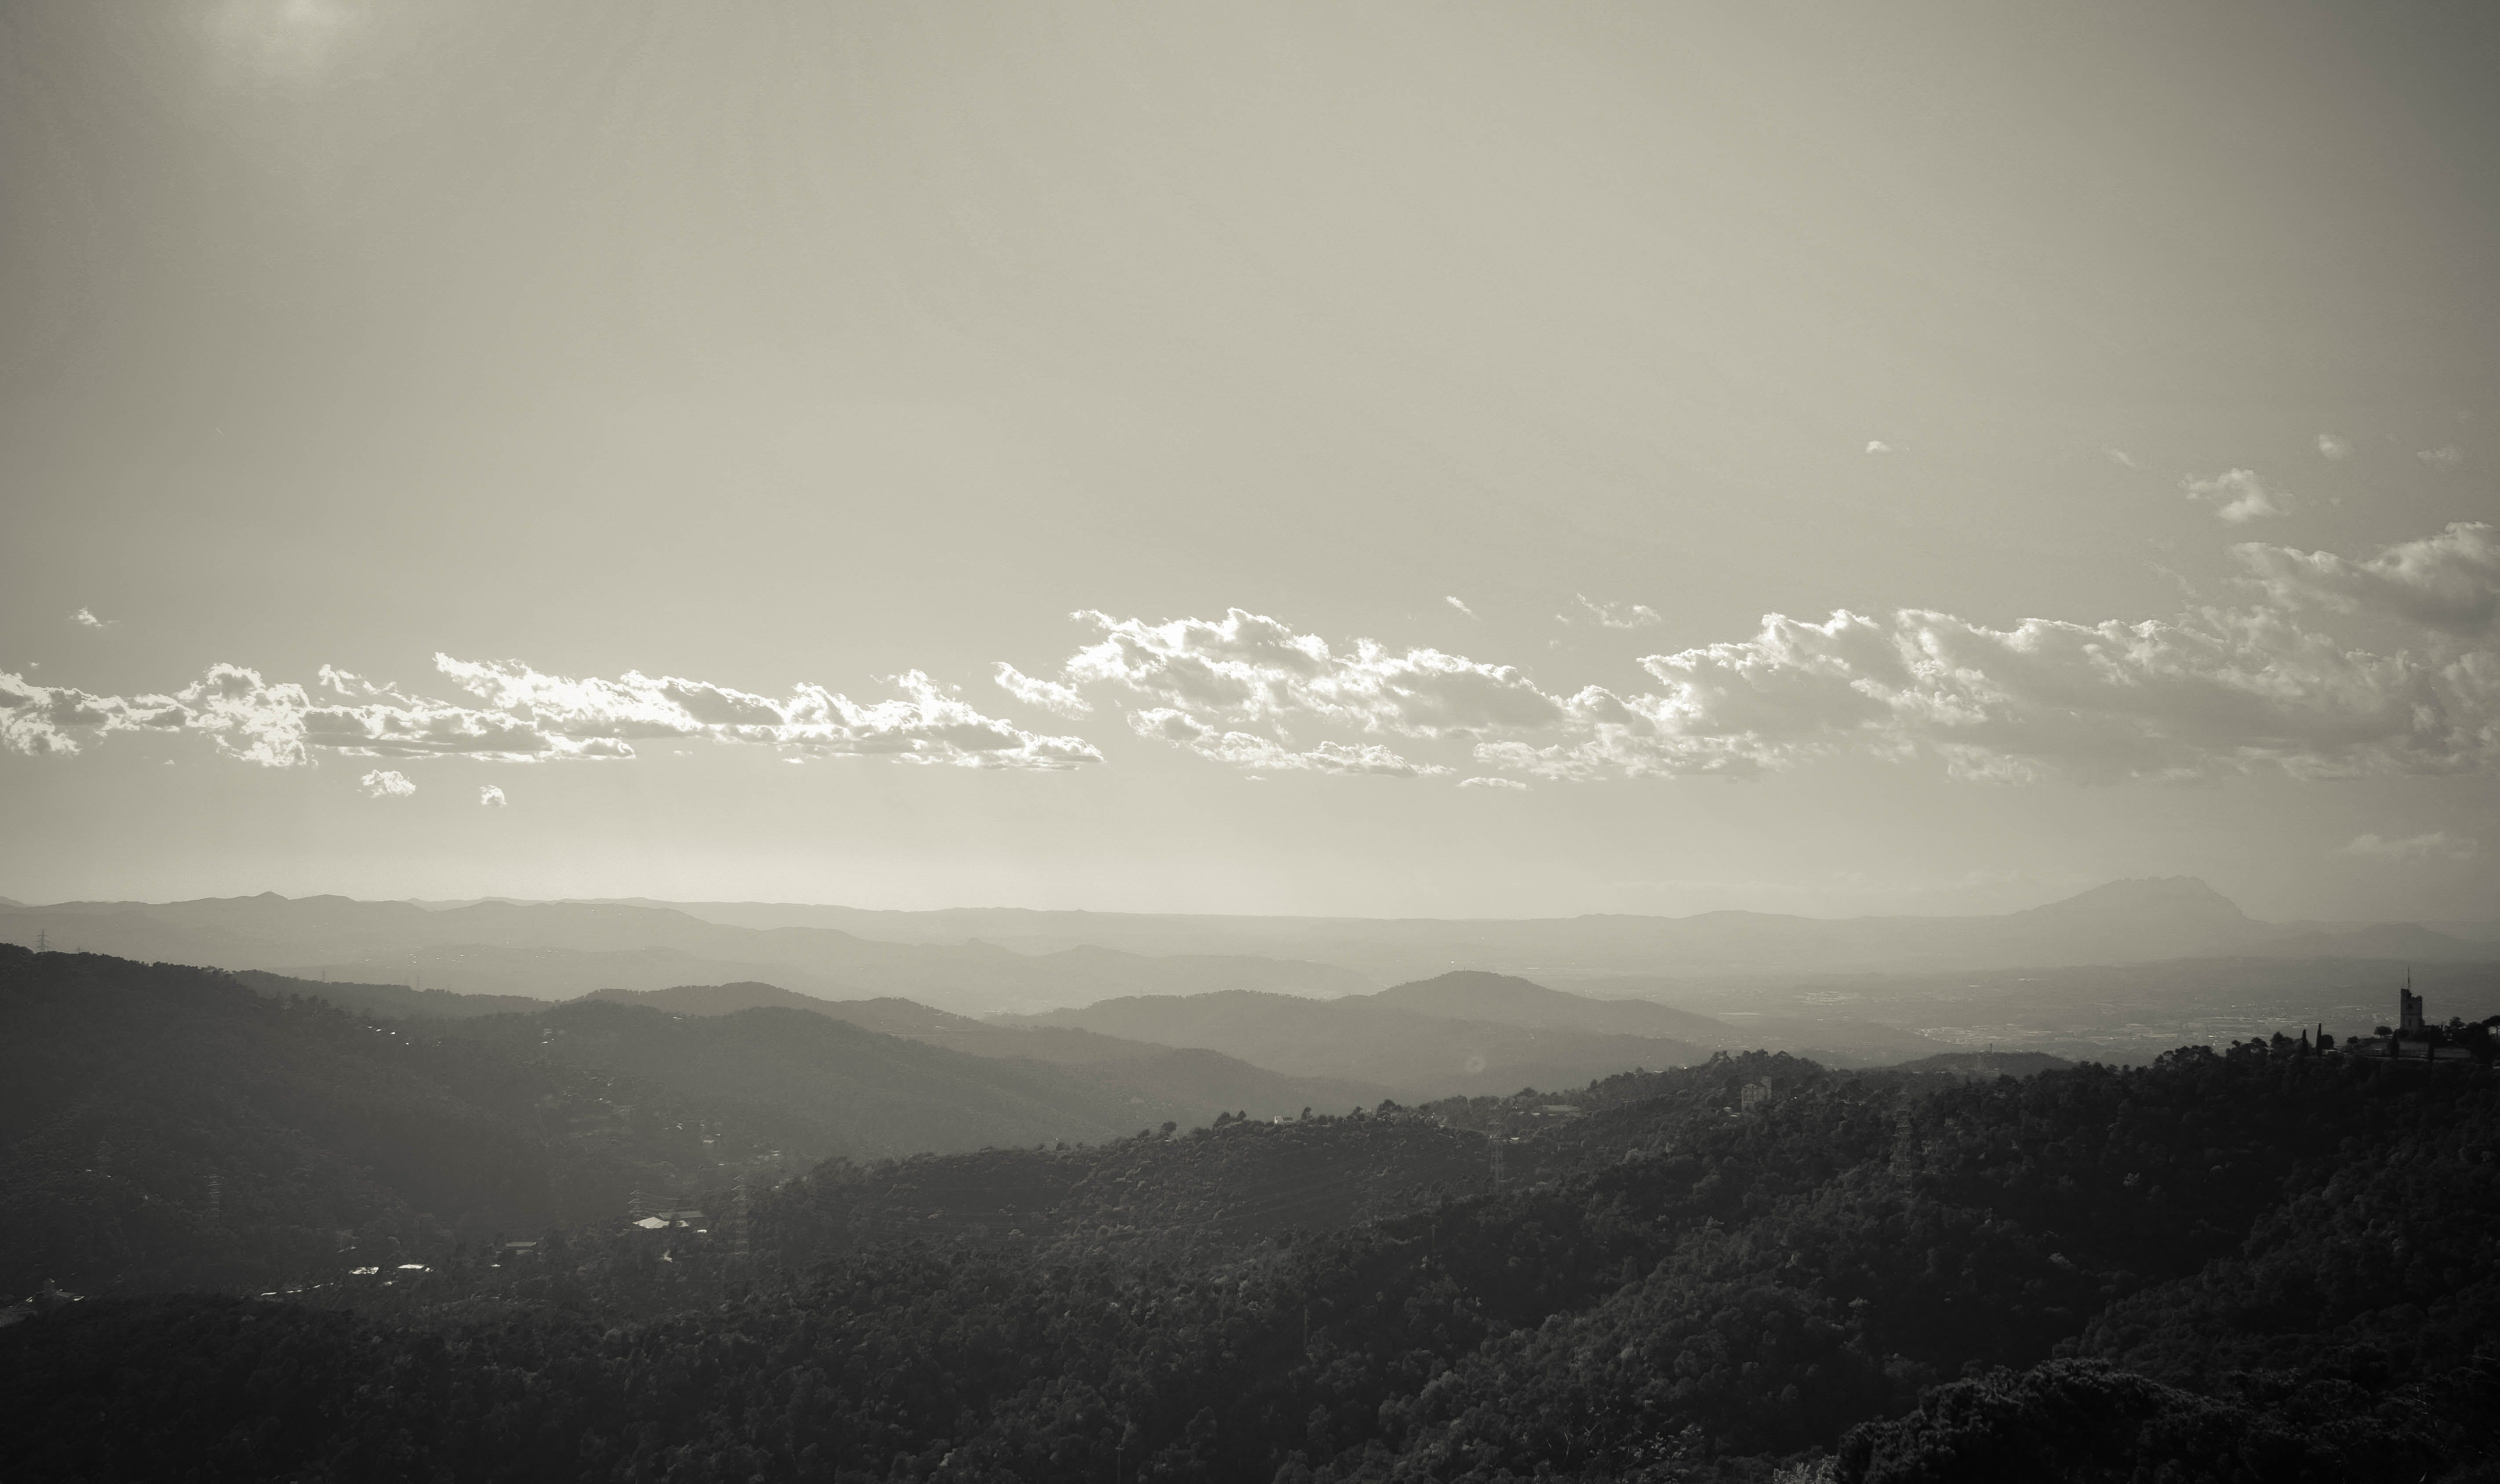 Mountain Range during Daytime Grey Scale Photography